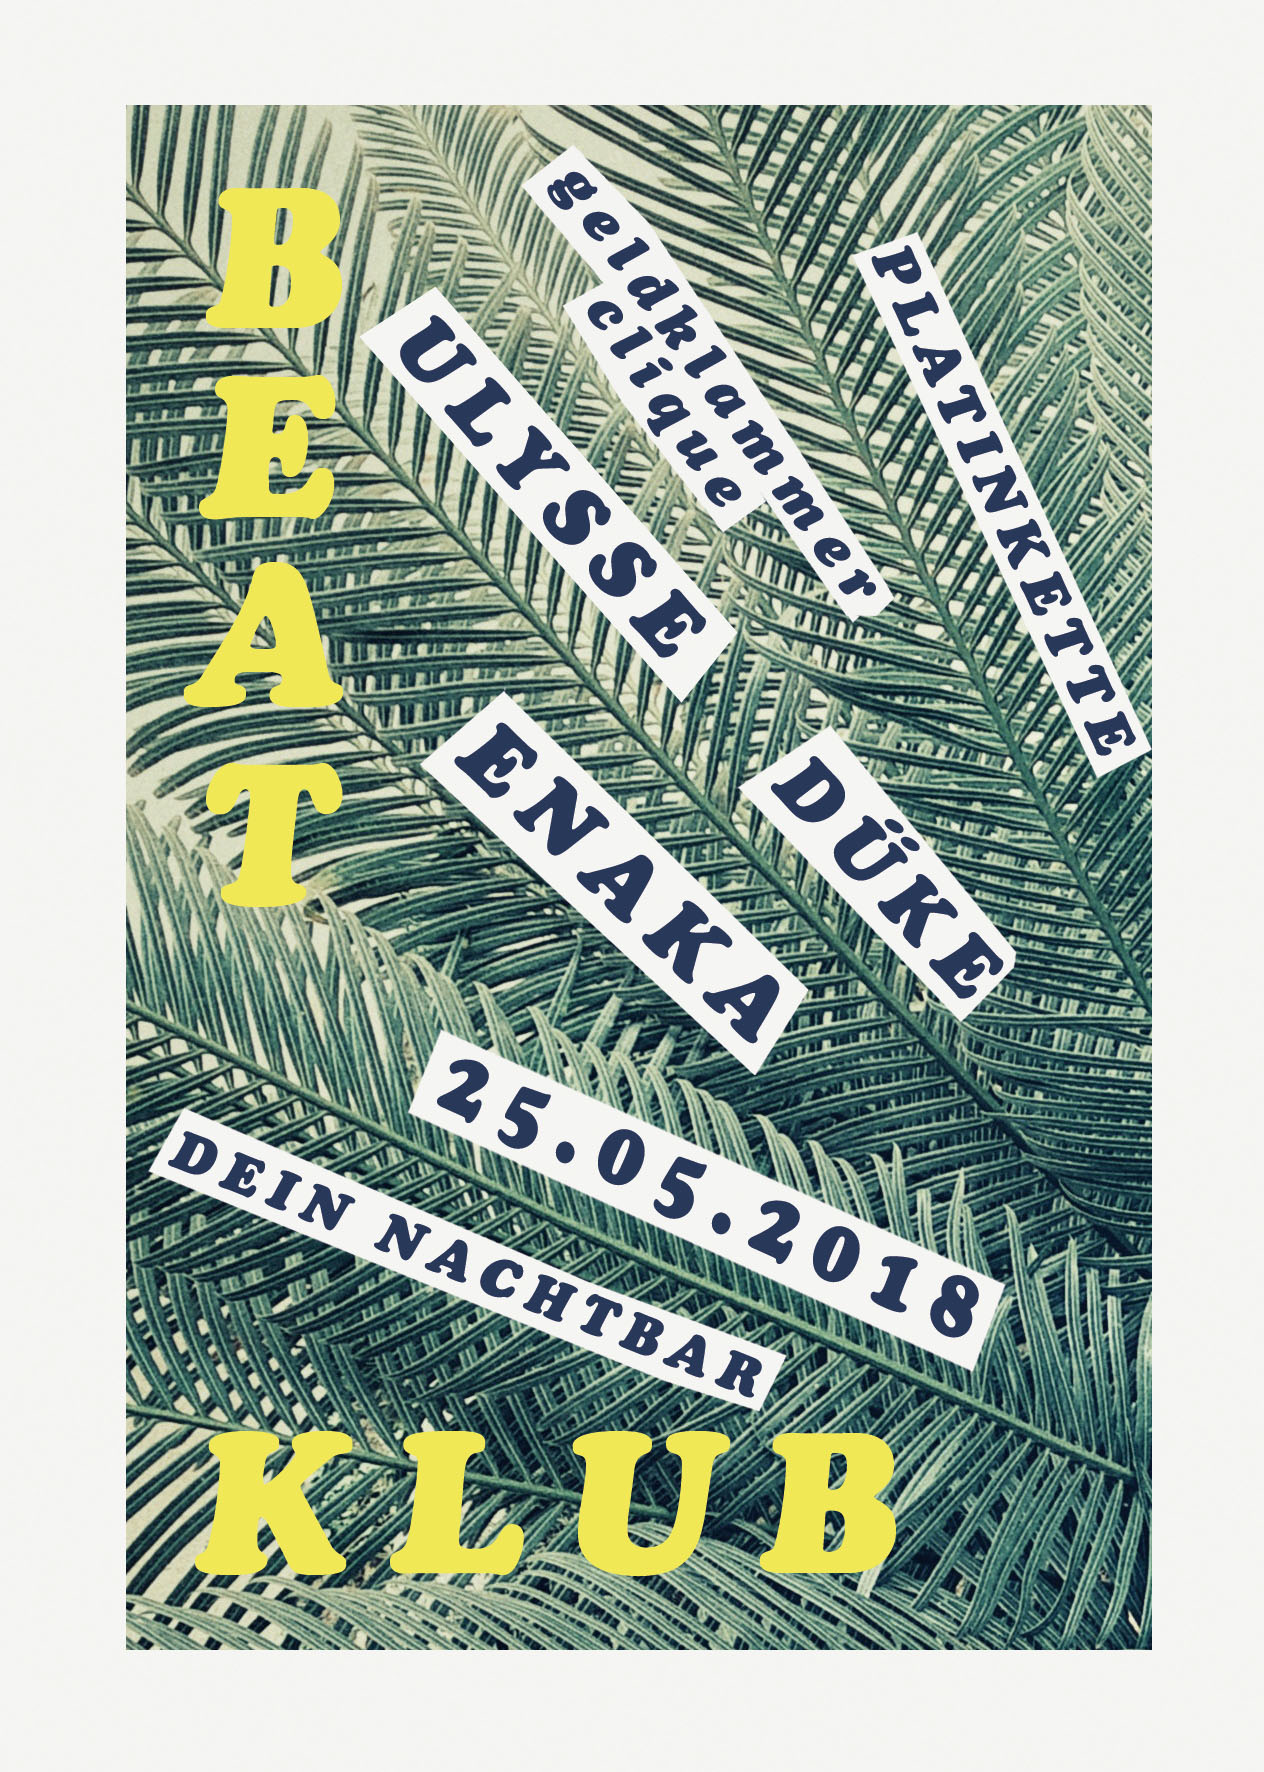 25.05.2018 | Beat Klub is back